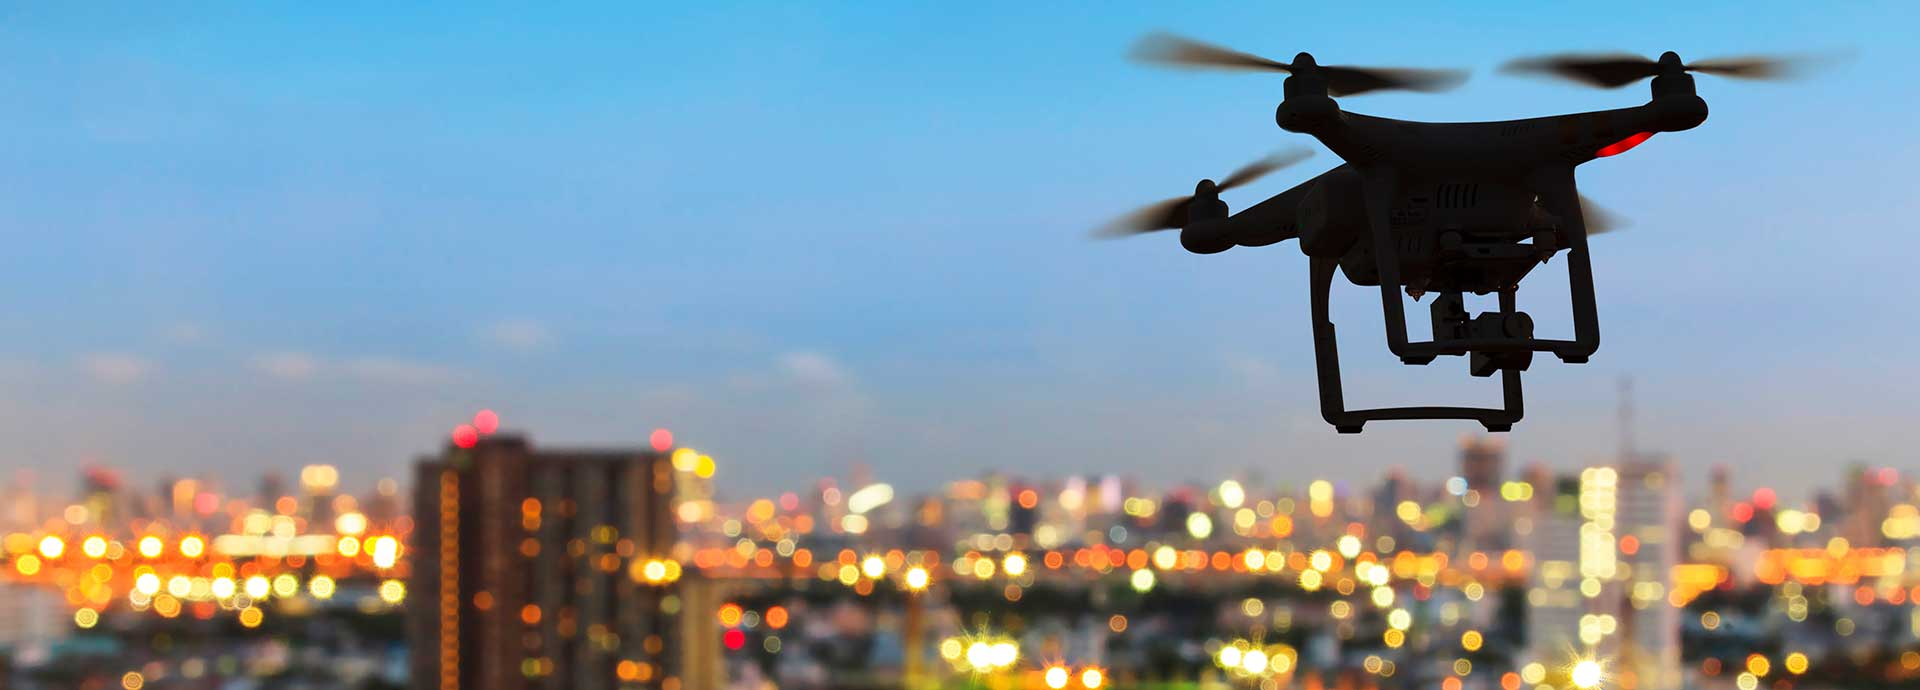 Drones and power generation